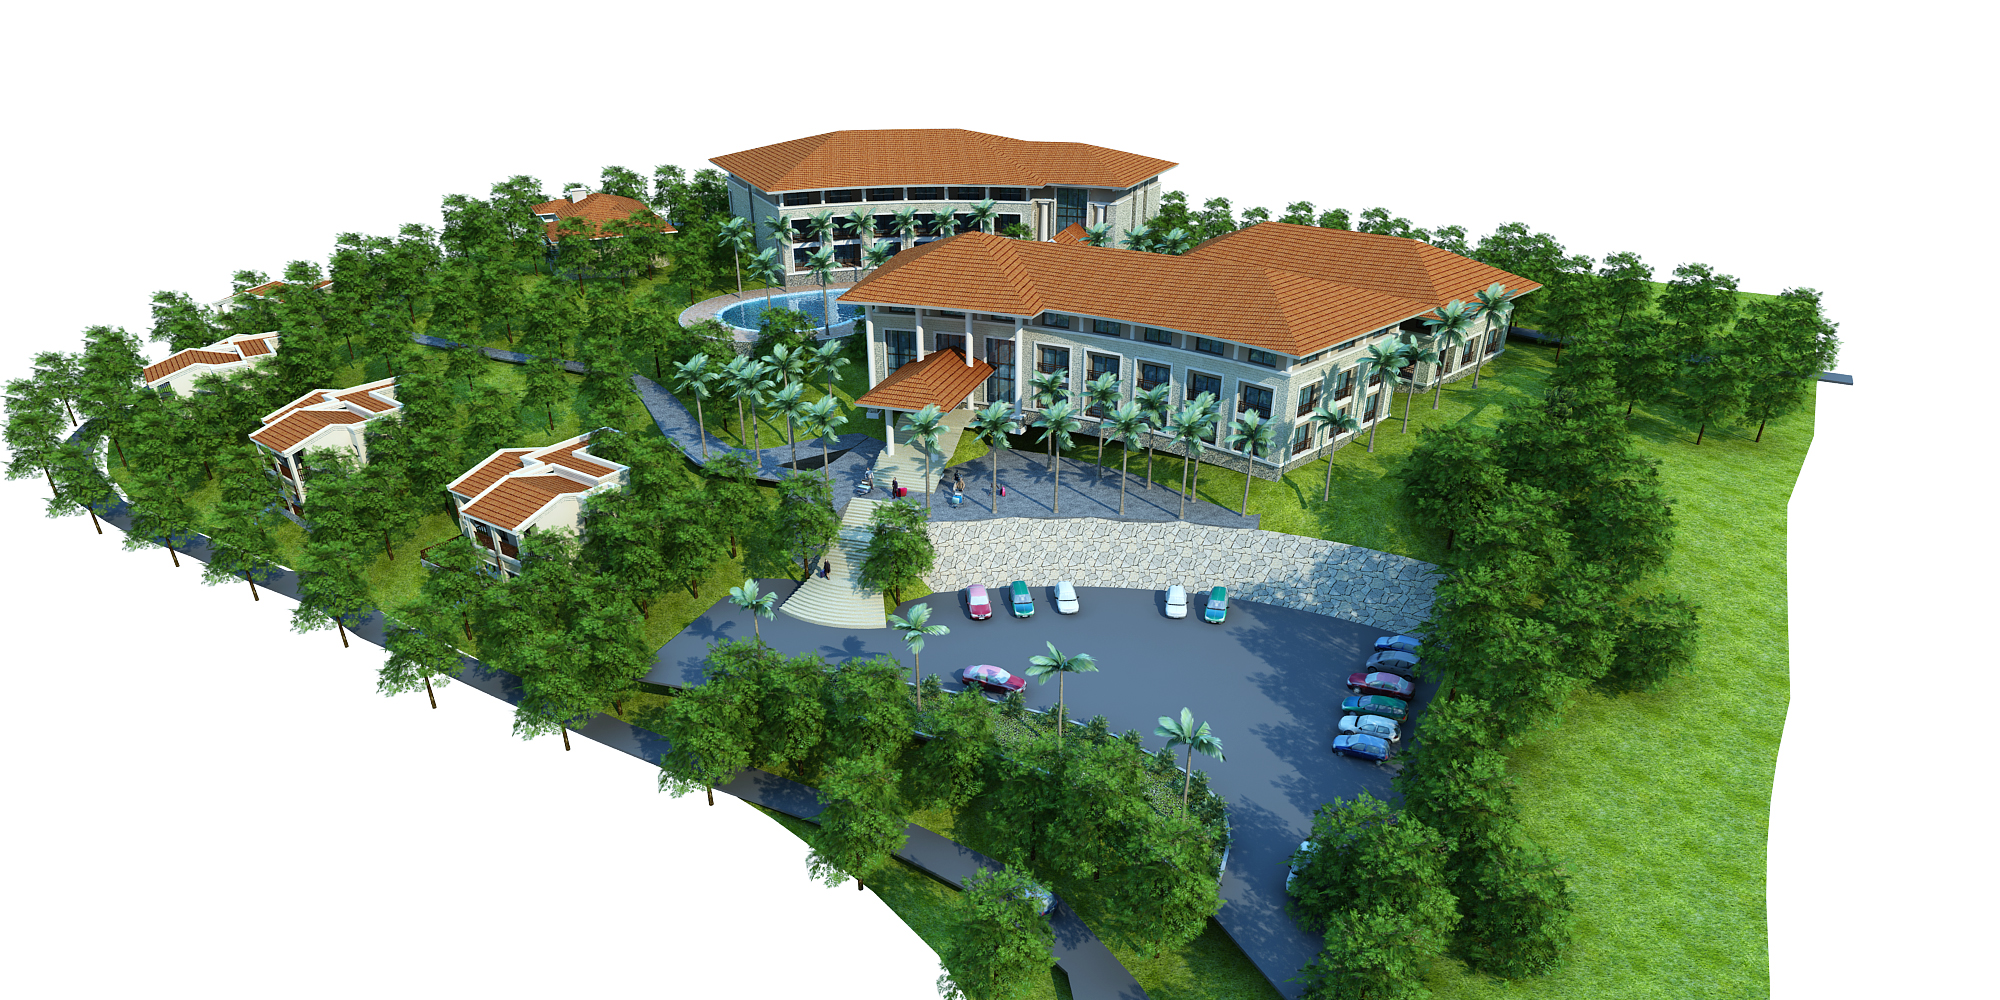 moutain resort hotel 3d model max other 159069